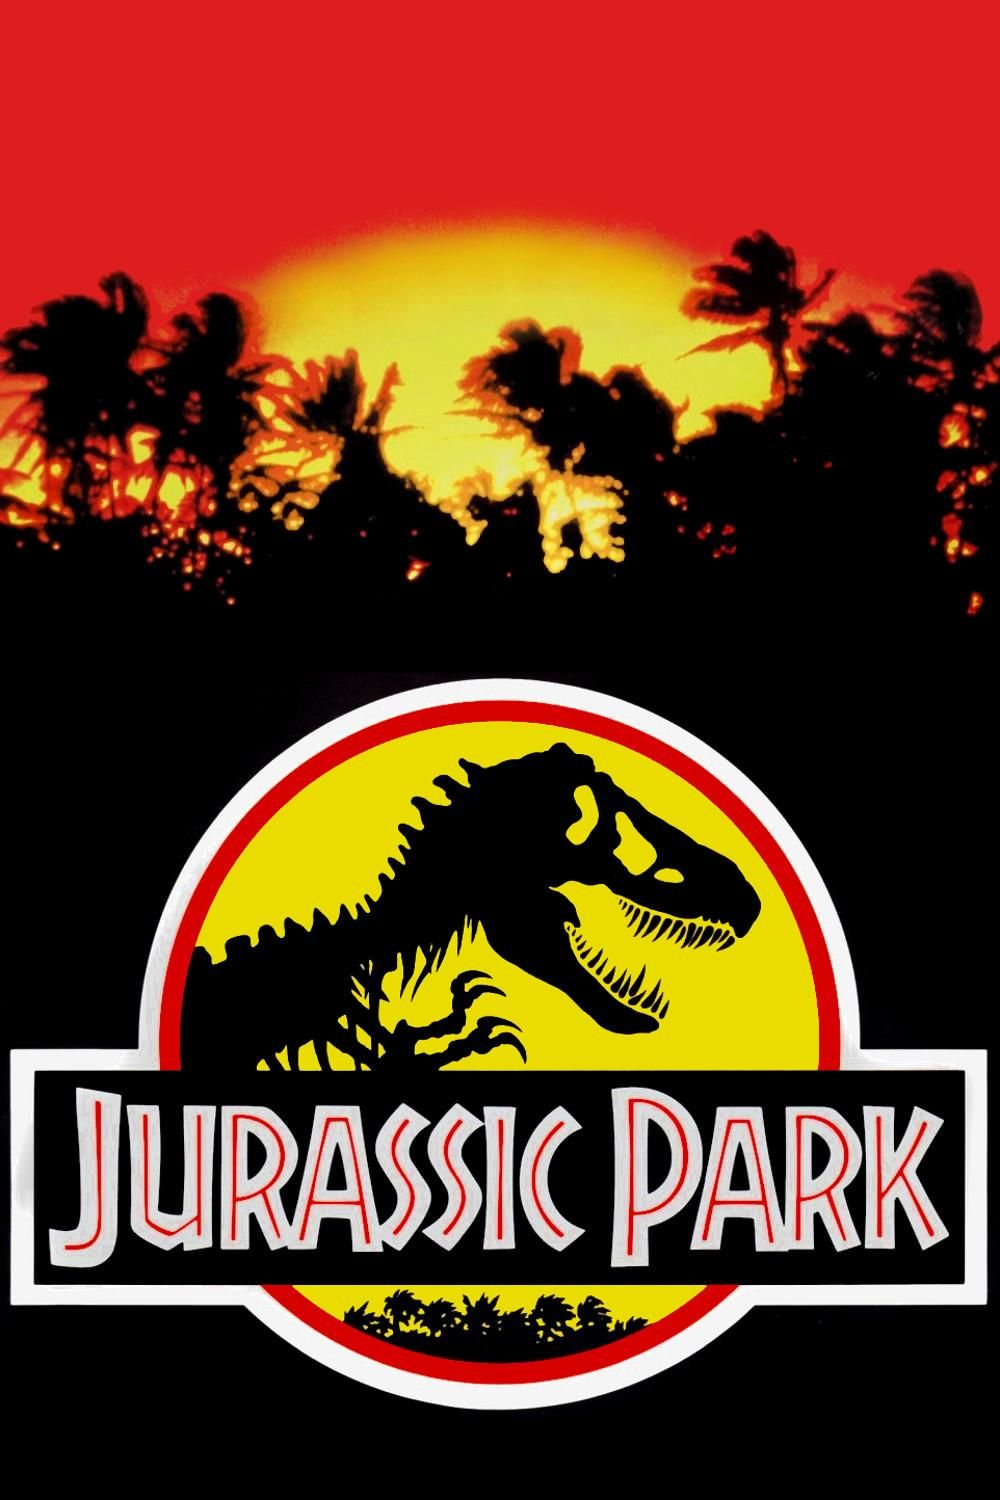 Jurassic Park I can't tell how much I love dinosaurs and